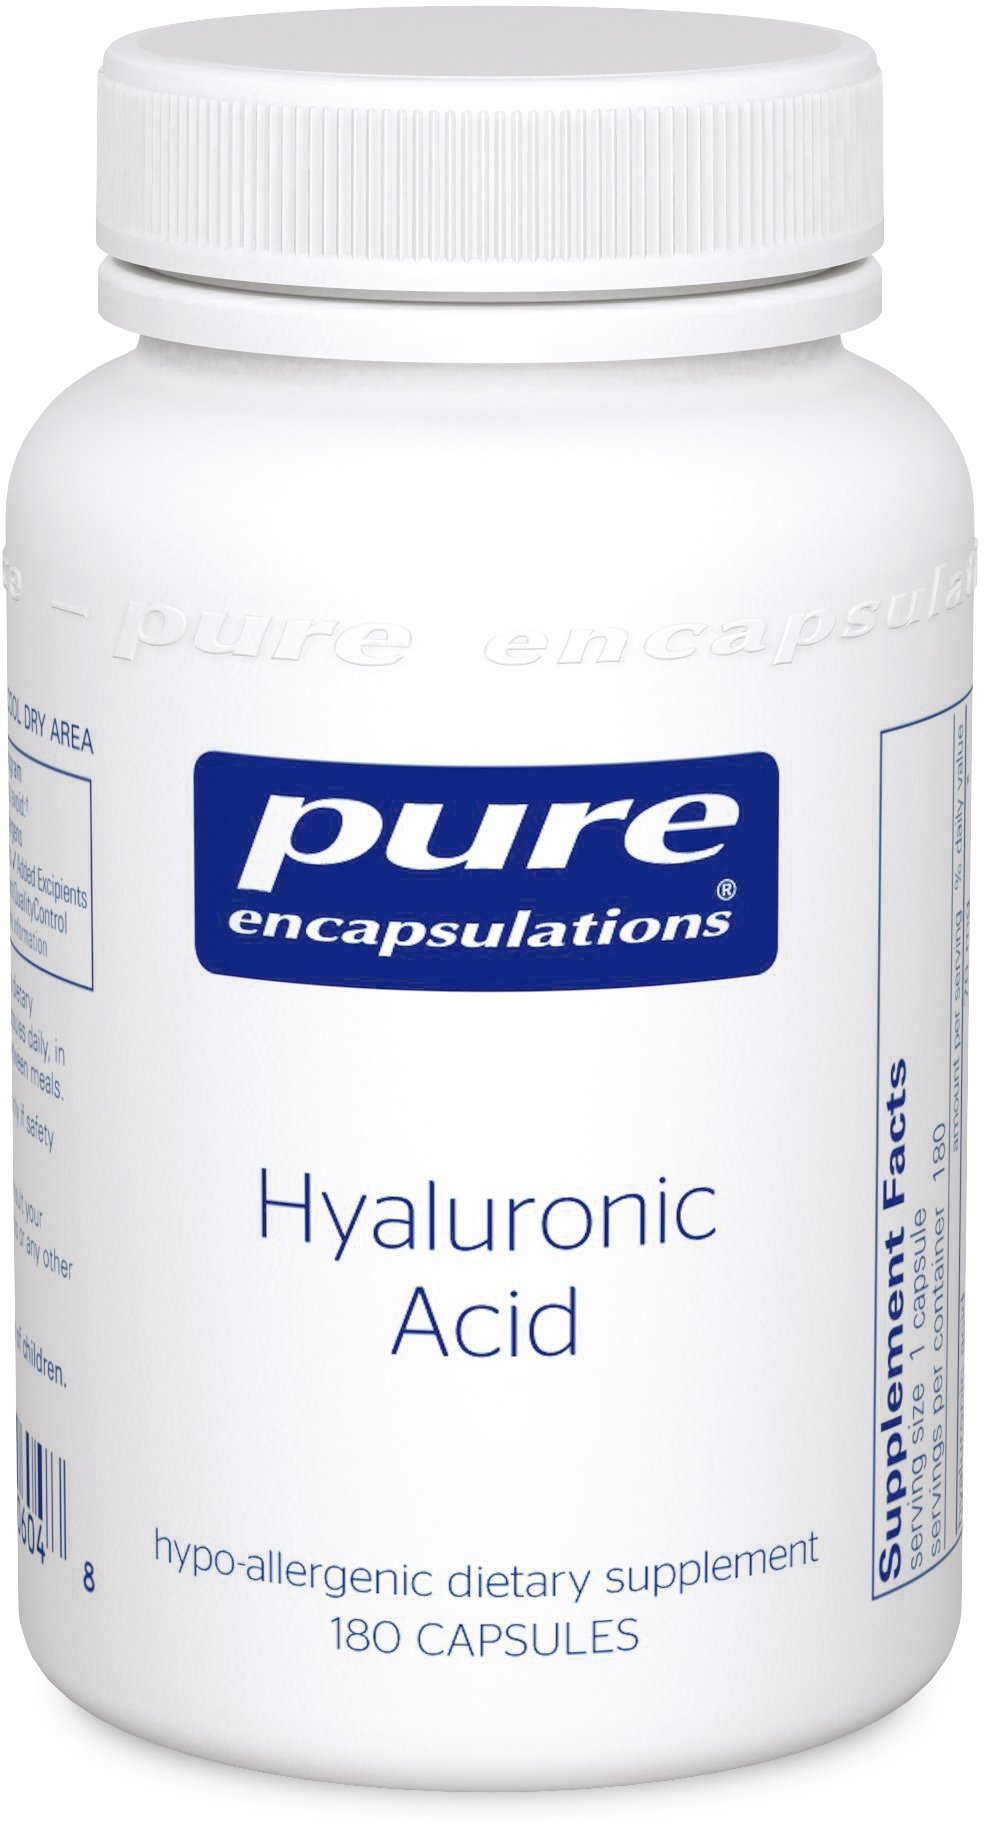 Pure Encapsulations - Hyaluronic Acid - Hypoallergenic Supplement Supports Skin Hydration, Joint Lubrication and Comfort* - 180 Capsules by Pure Encapsulations